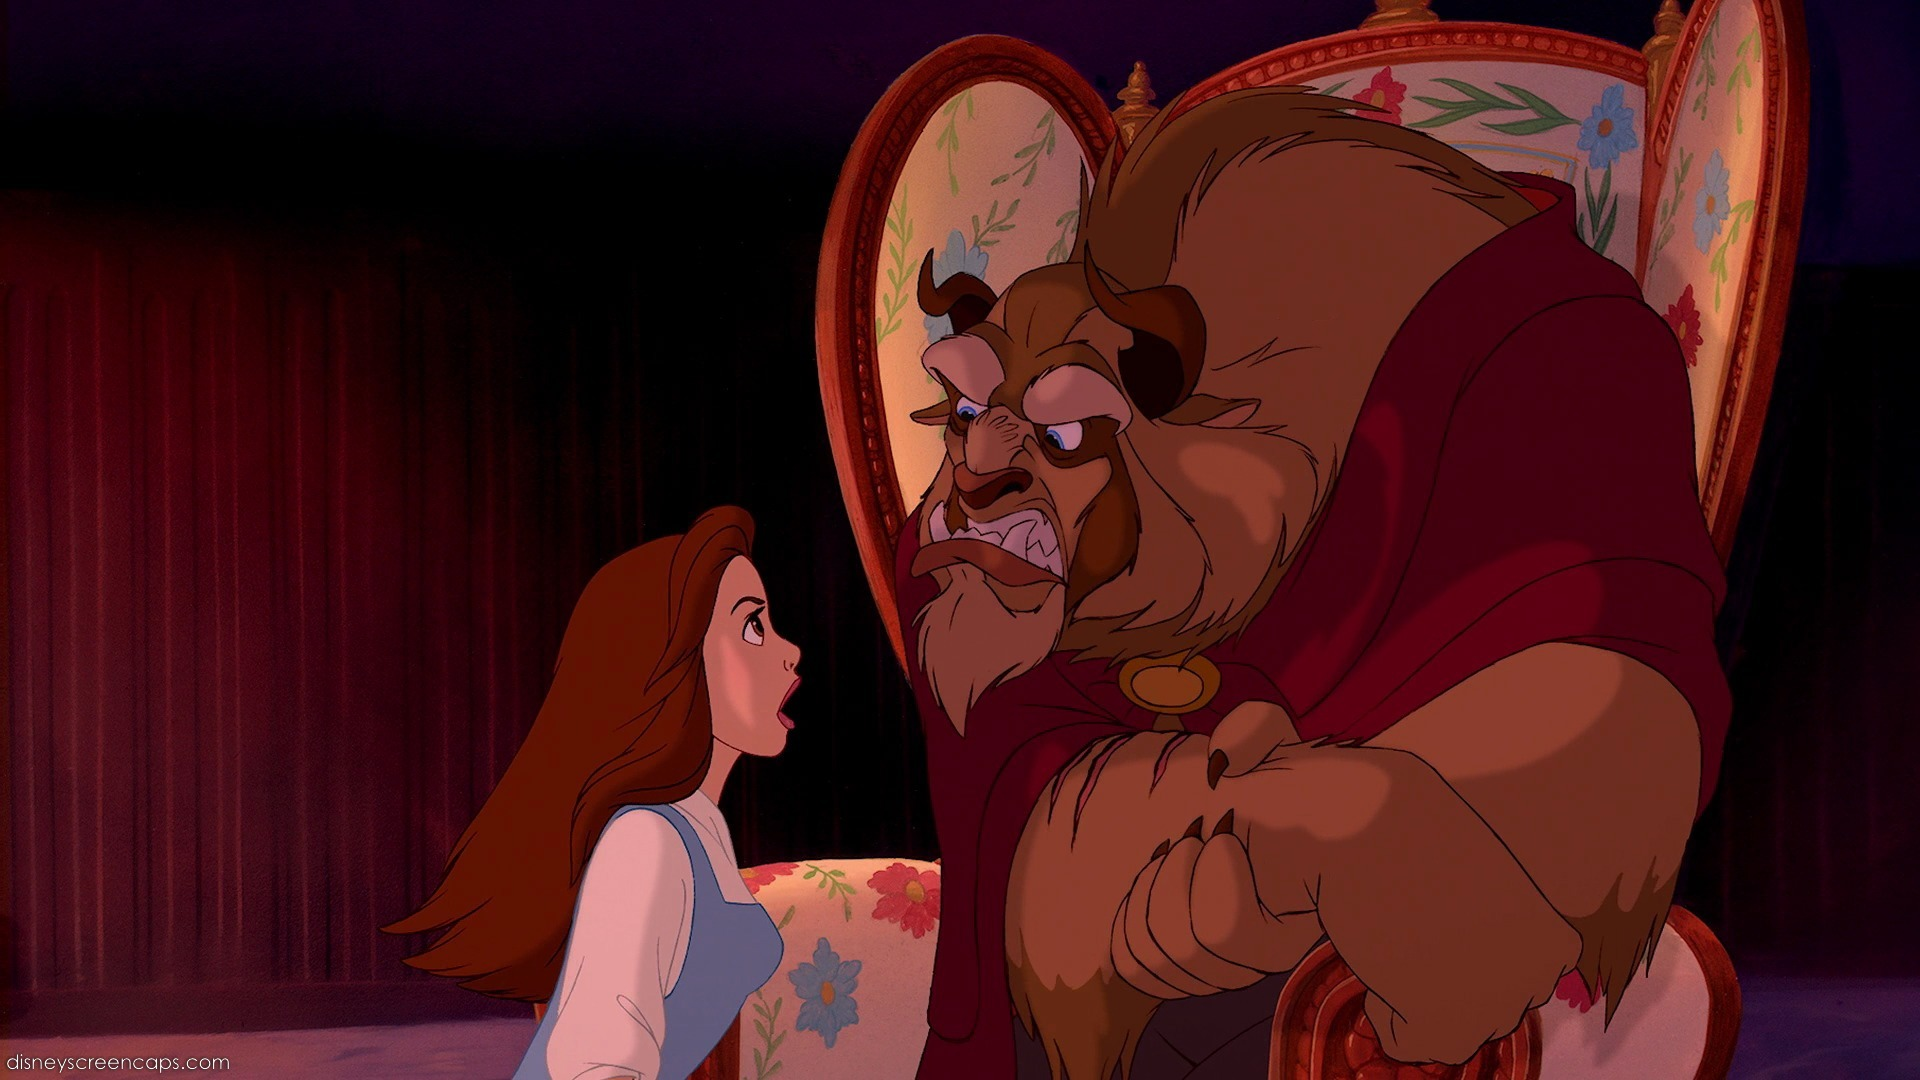 Images of Prince Name In Beauty And The Beast - #rock-cafe